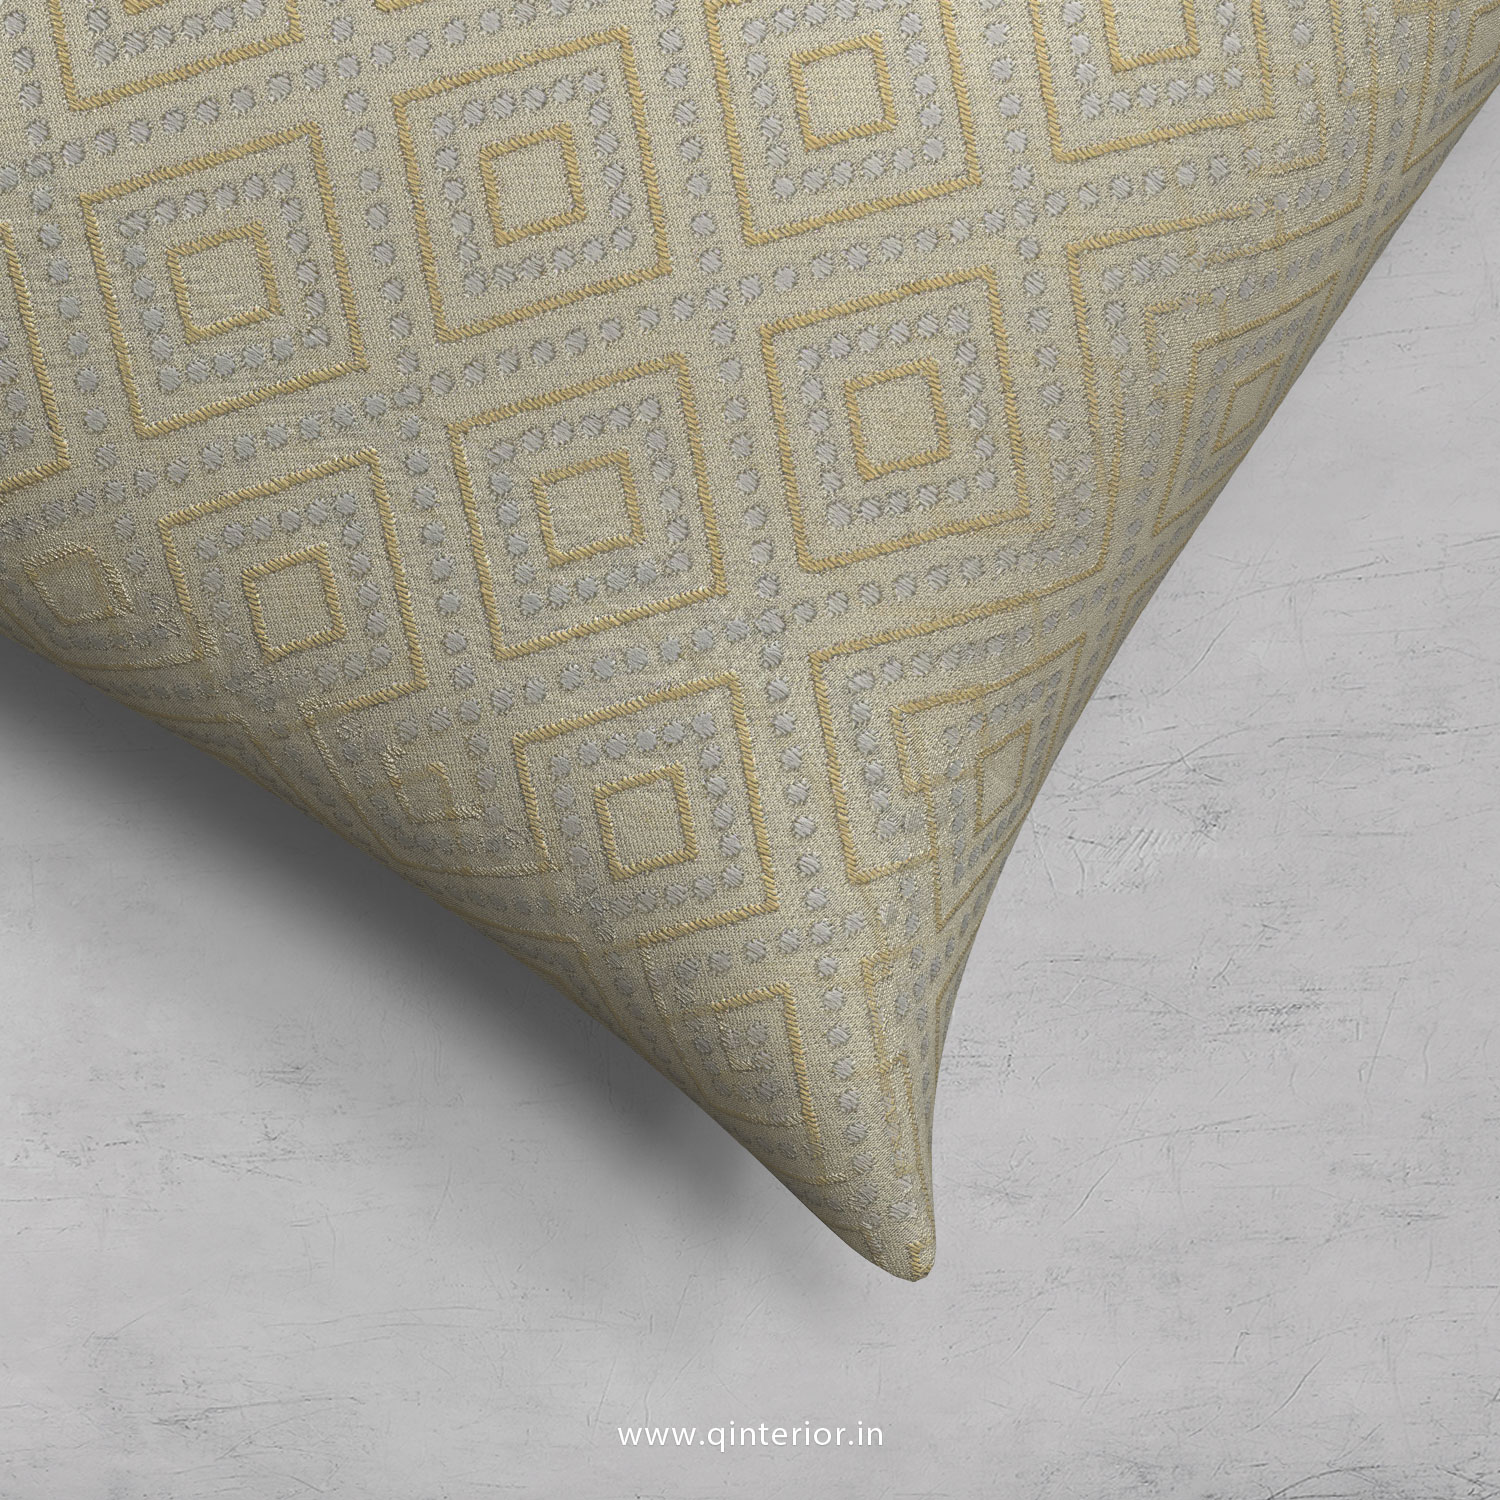 Cushion With Cushion Cover in Jacquard- CUS001 JQ35